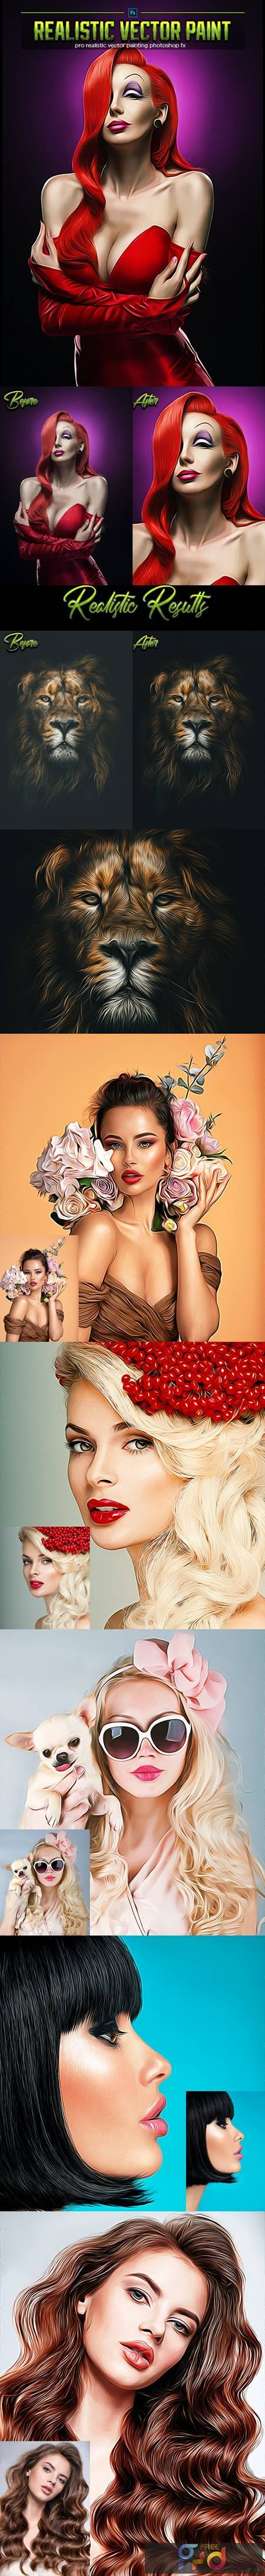 Ultra Vector Paint Photoshop Action 29390310 1